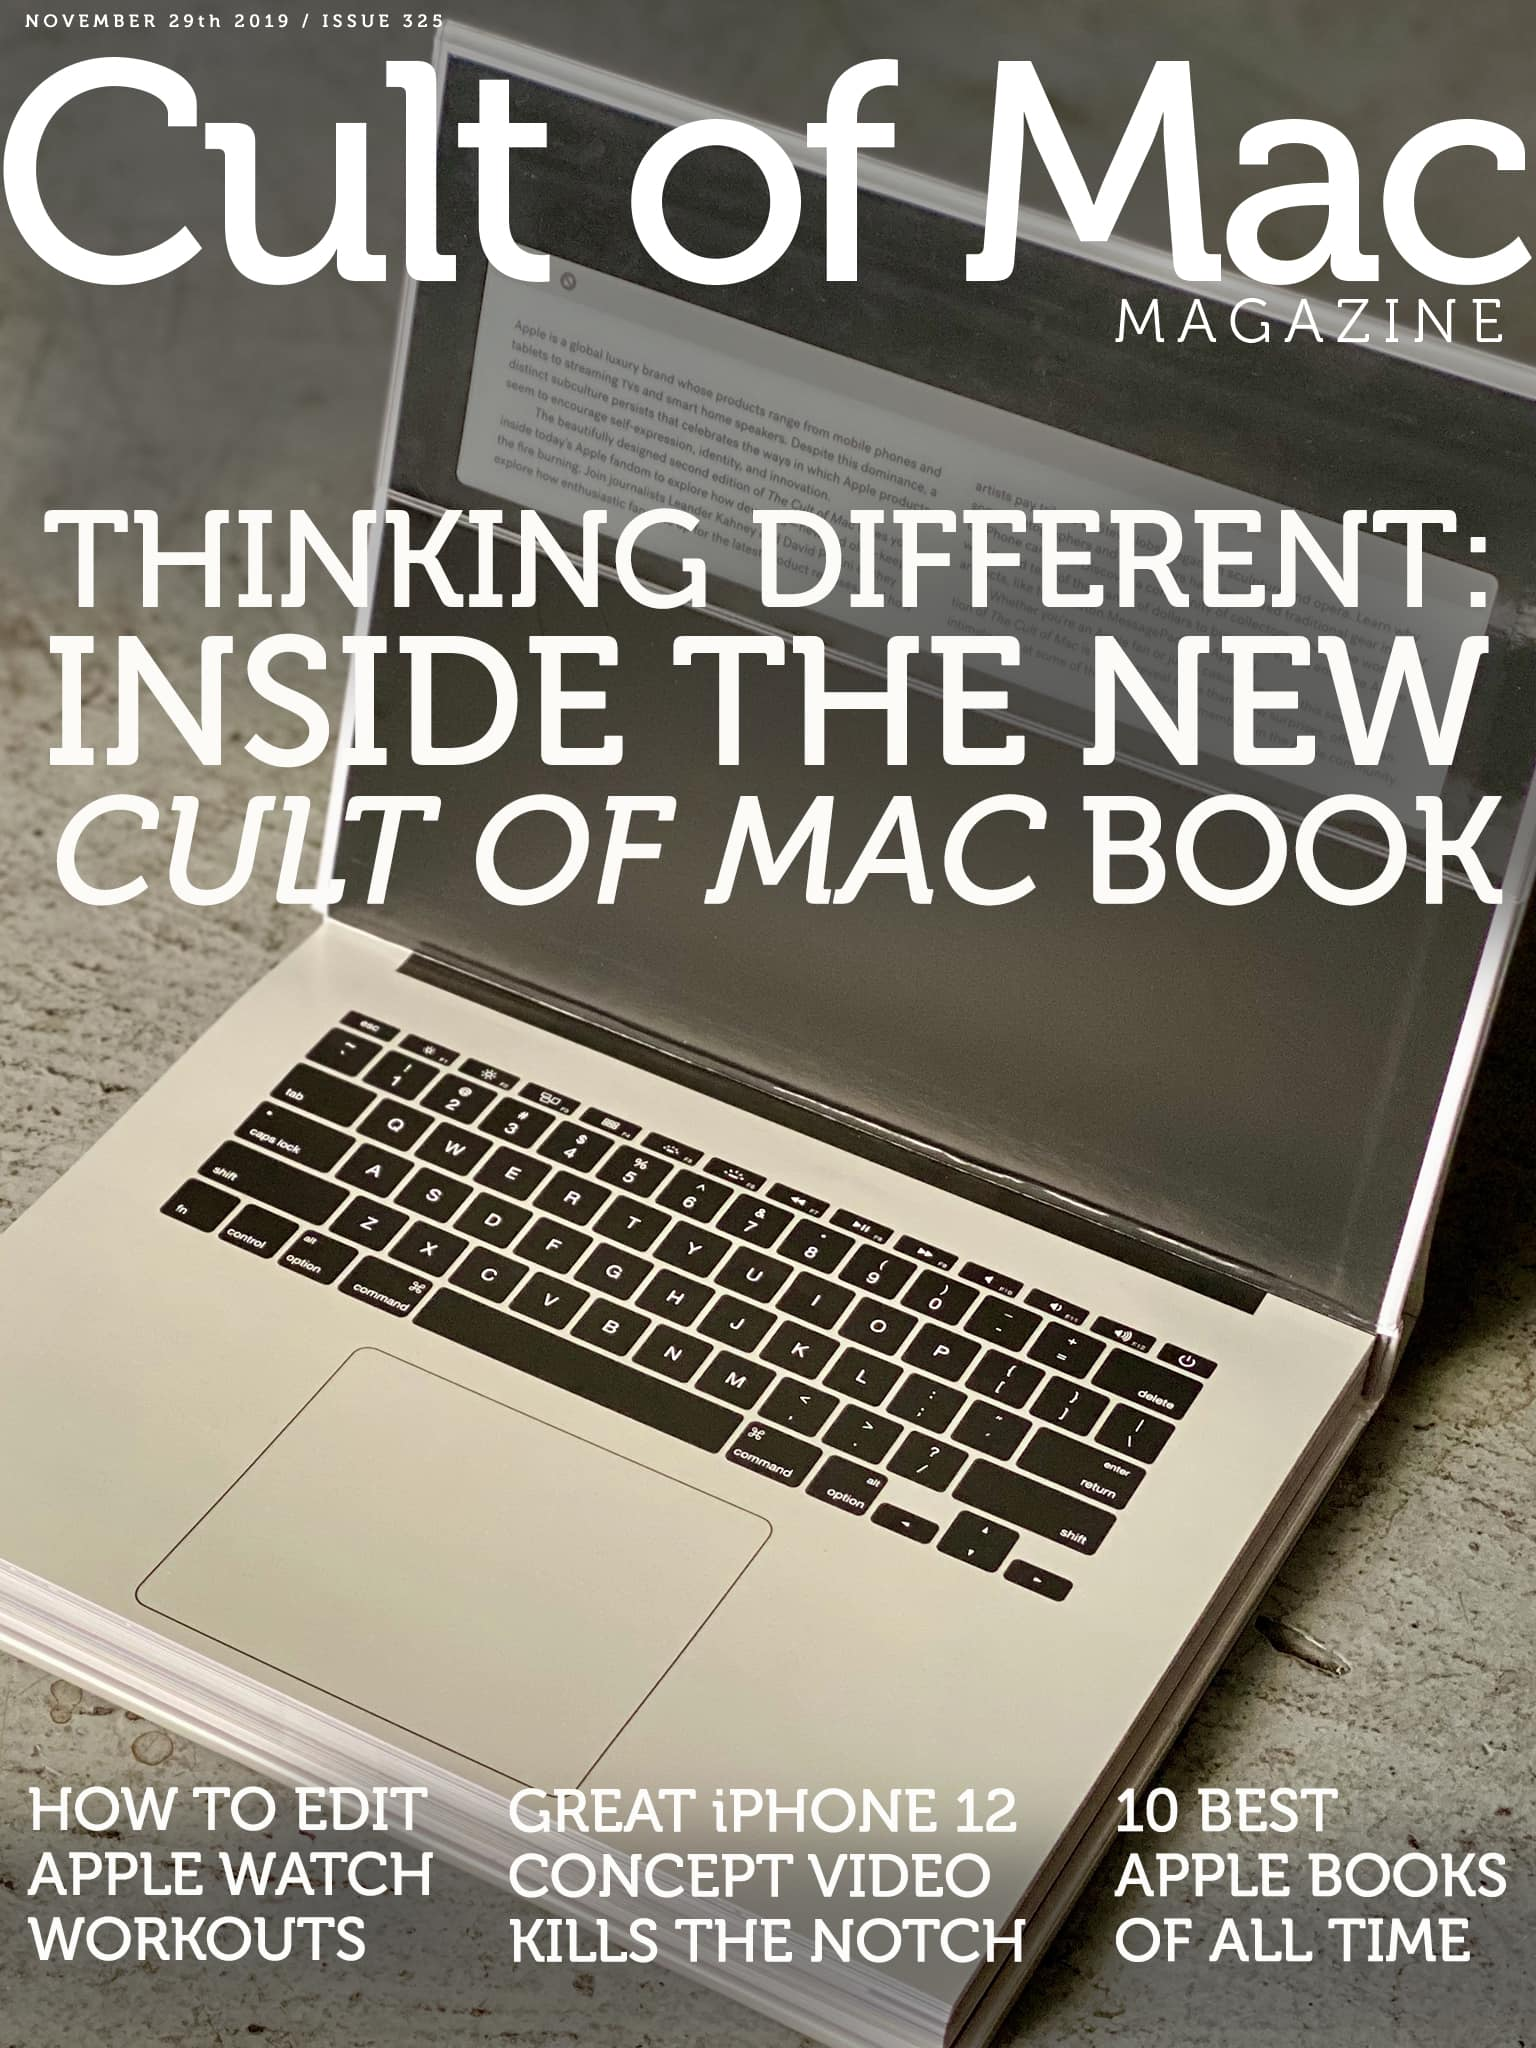 Peek inside the new book Cult of Mac, 2nd Edition.